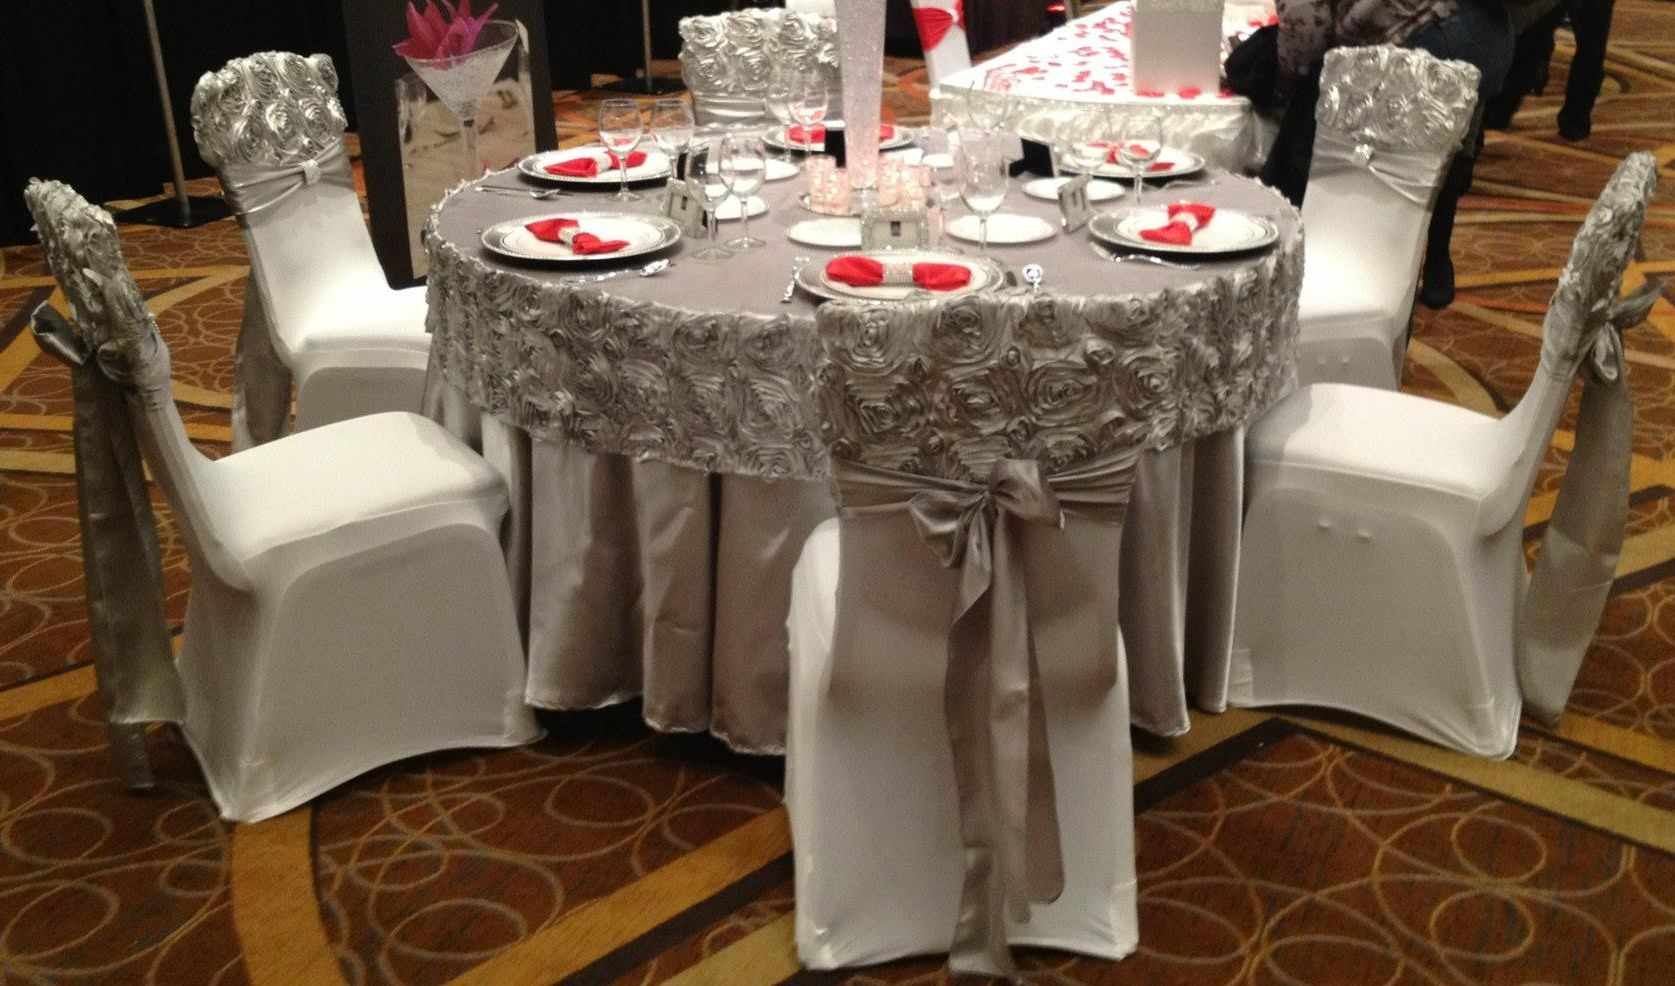 Couture Chair Covers And Events Tabouret Stacking Chairs Rosette Caps Banquet Chiavari